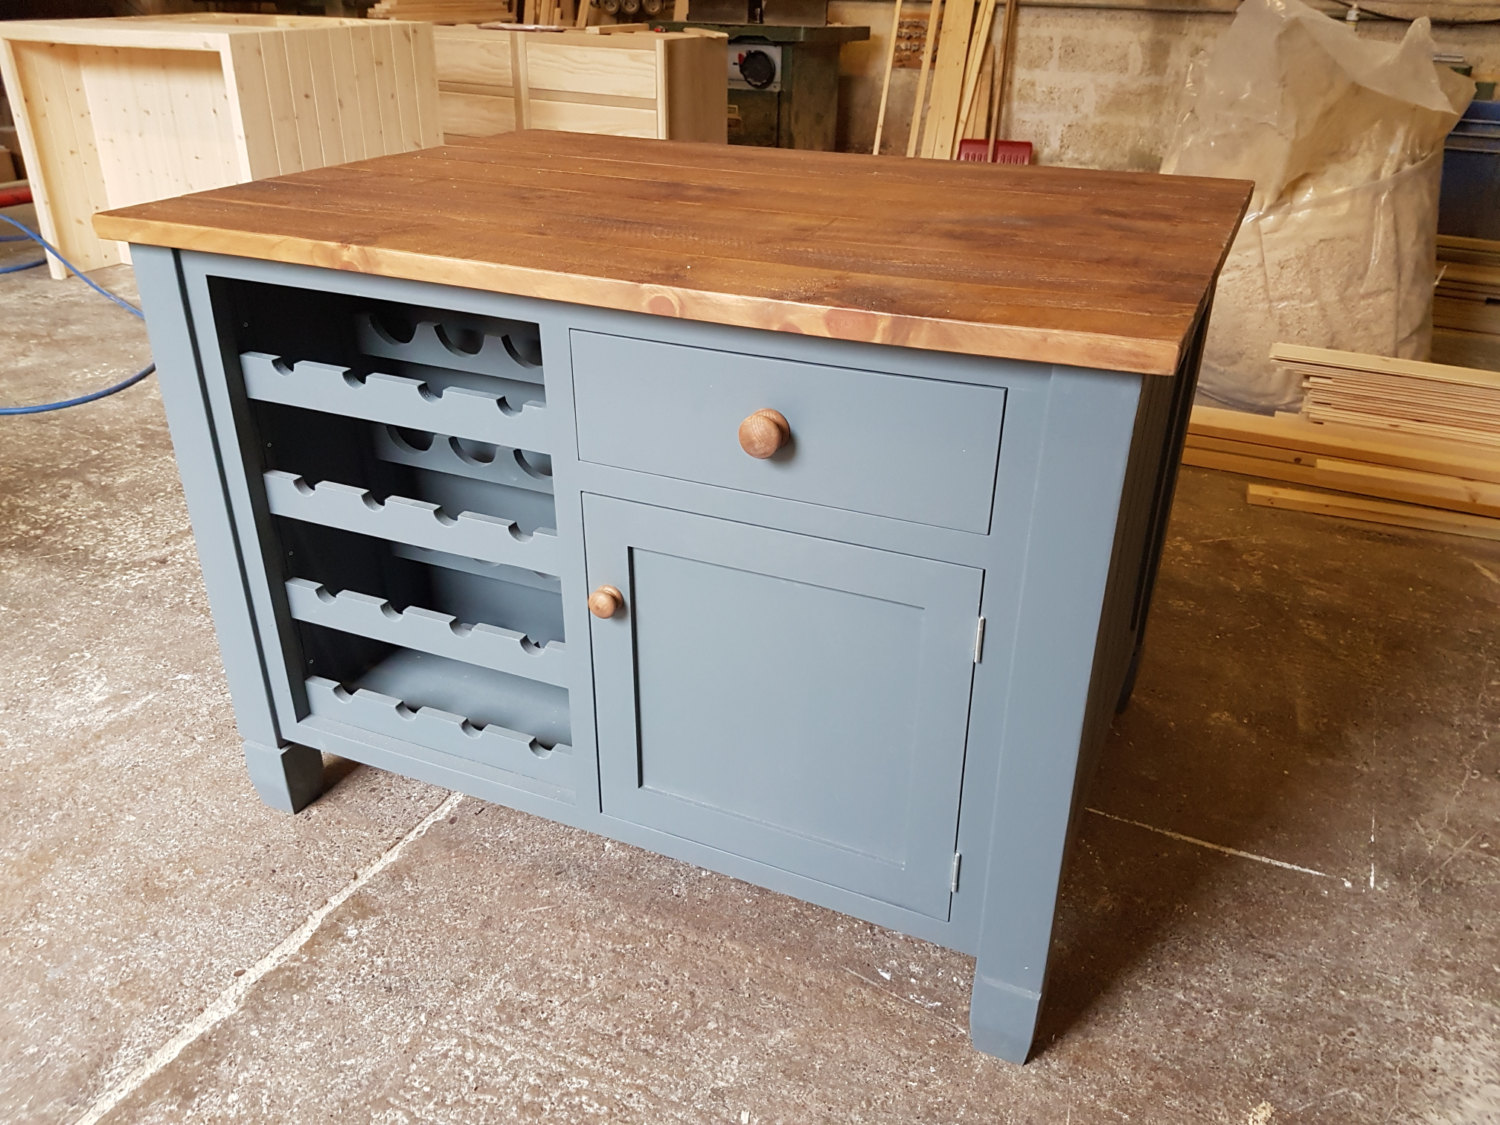 handmade kitchen islands sliding drawers for cabinets tom marsh bespoke any design or specification